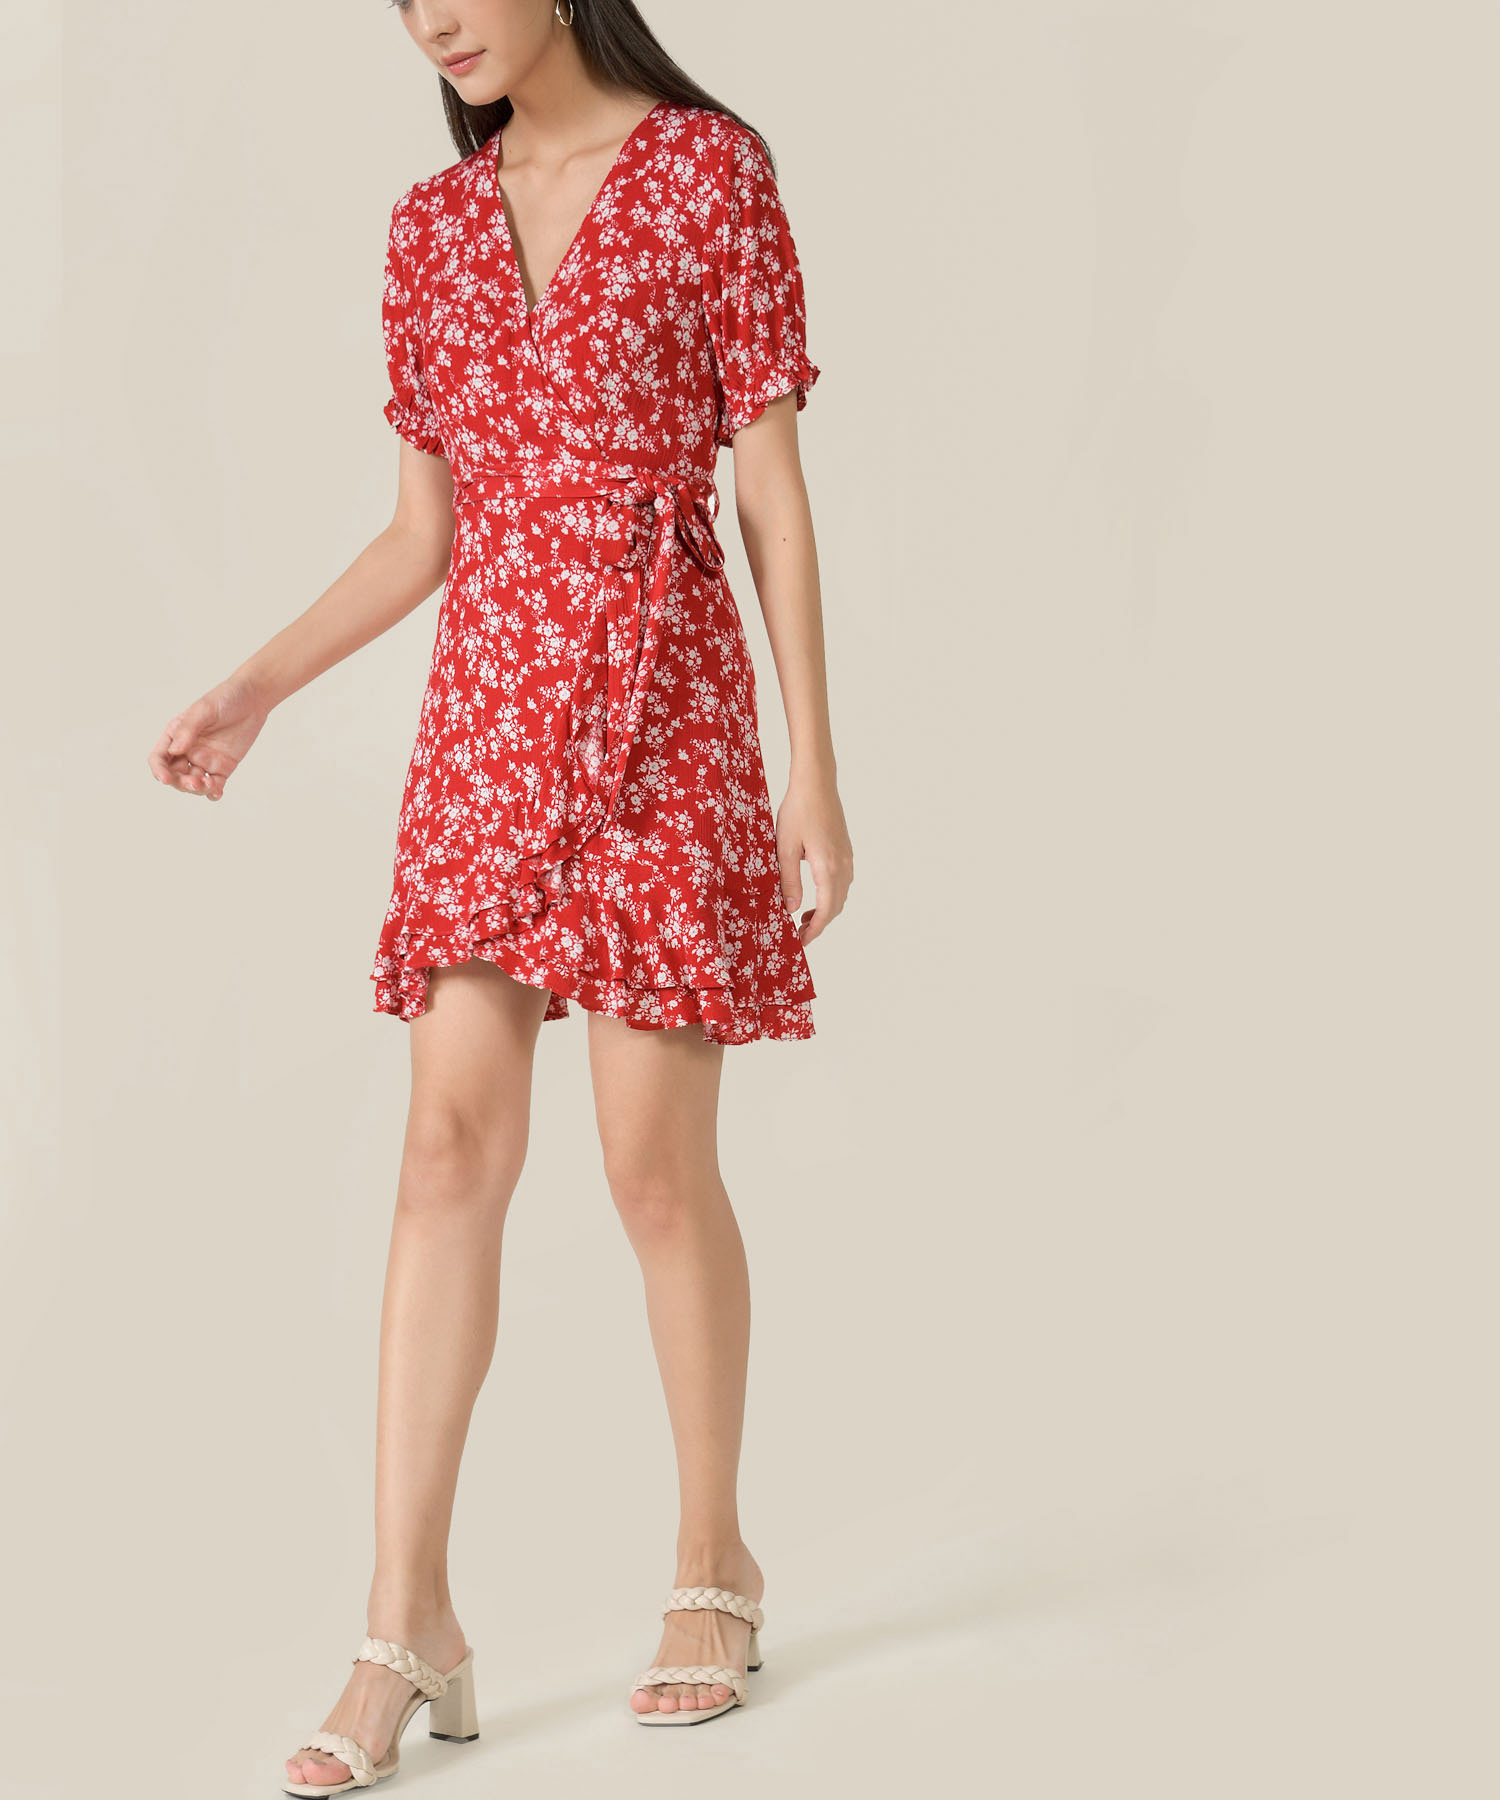 rue-floral-ruffle-overlay-dress-scarlet-1